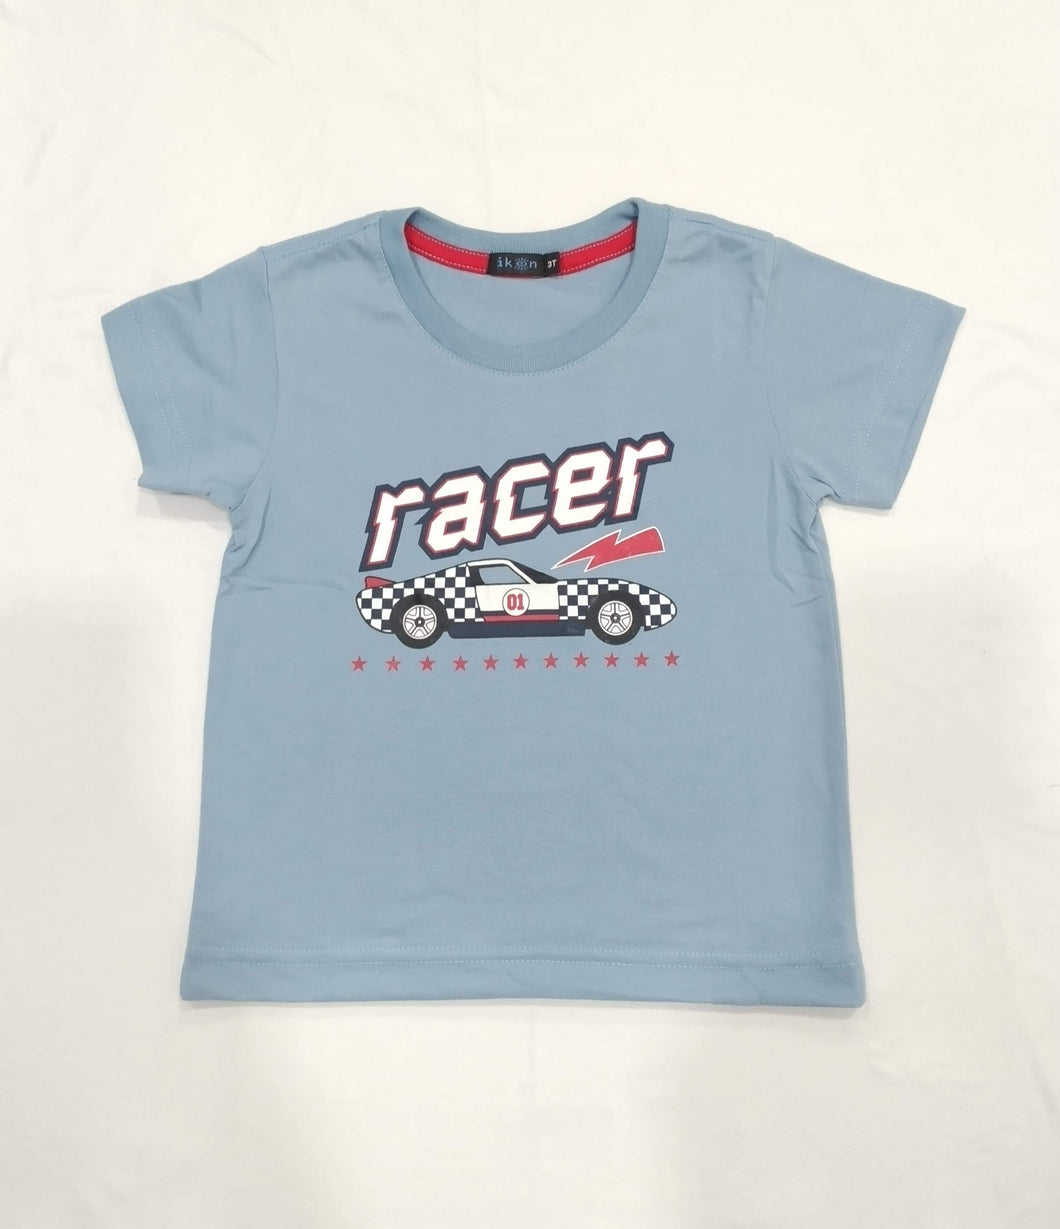 IKON | RACER POWDER BLUE TODDLER SHIRT